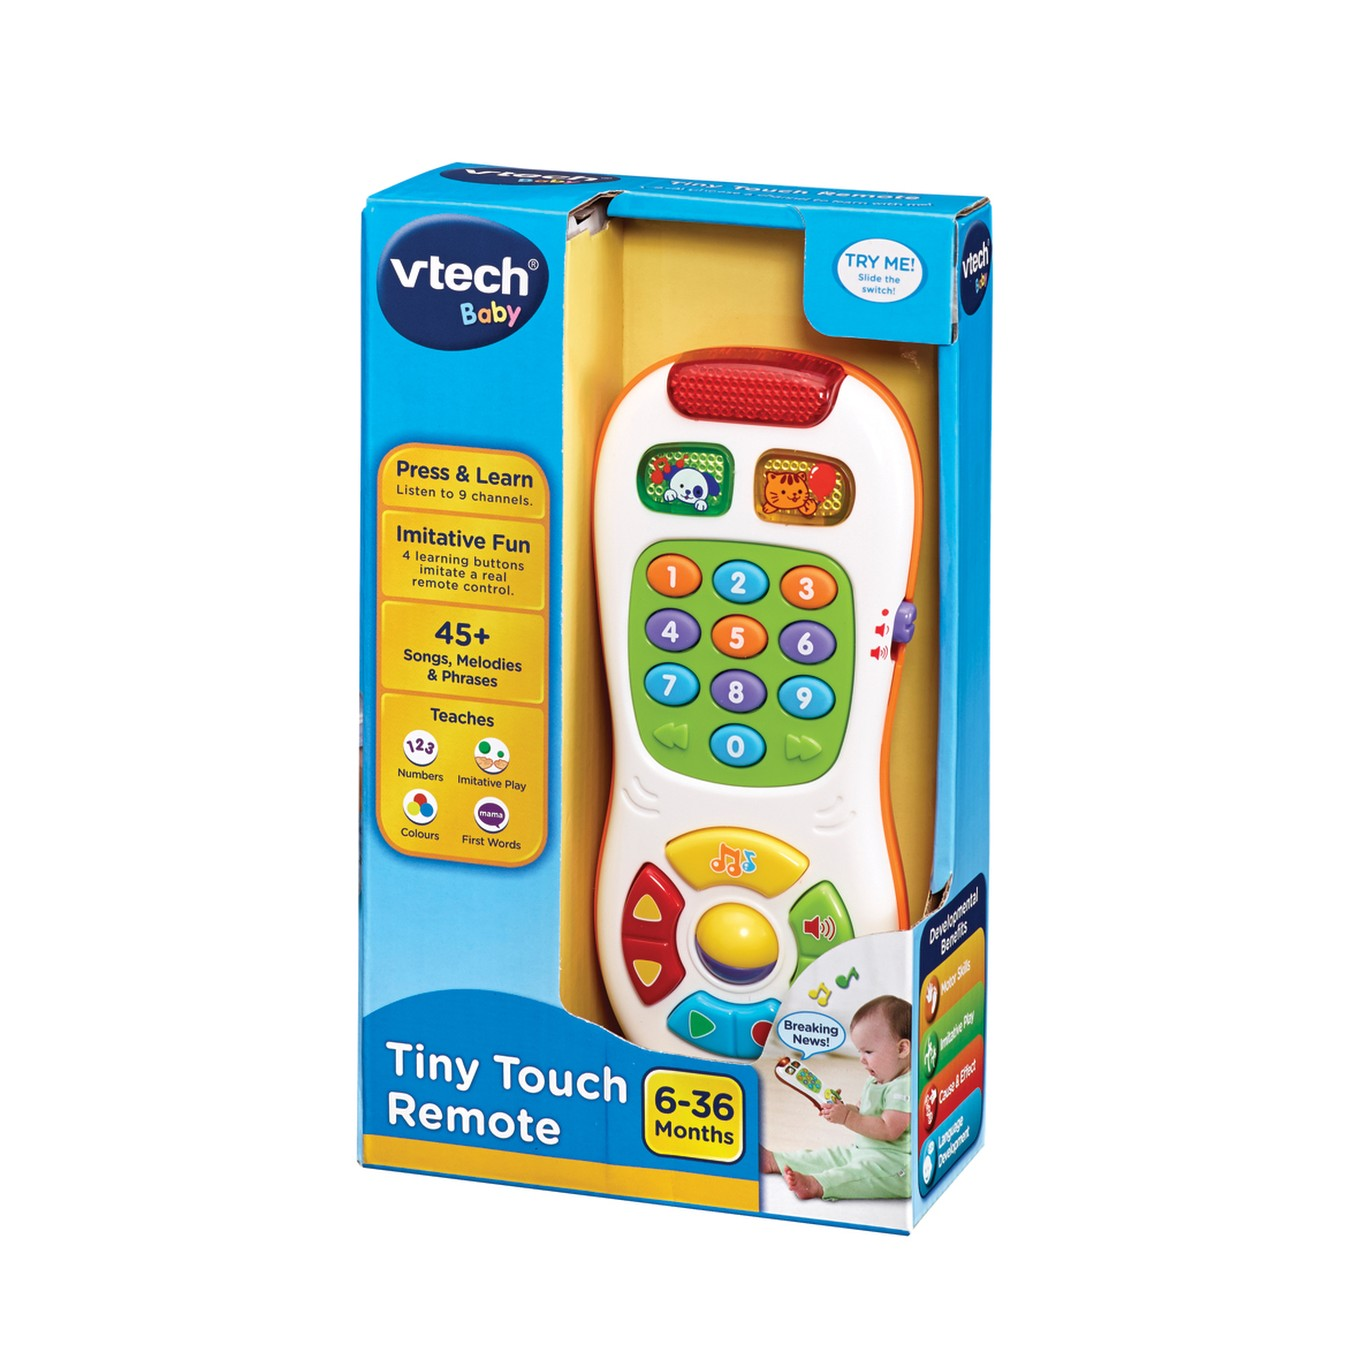 TINY TOUCH REMOTE